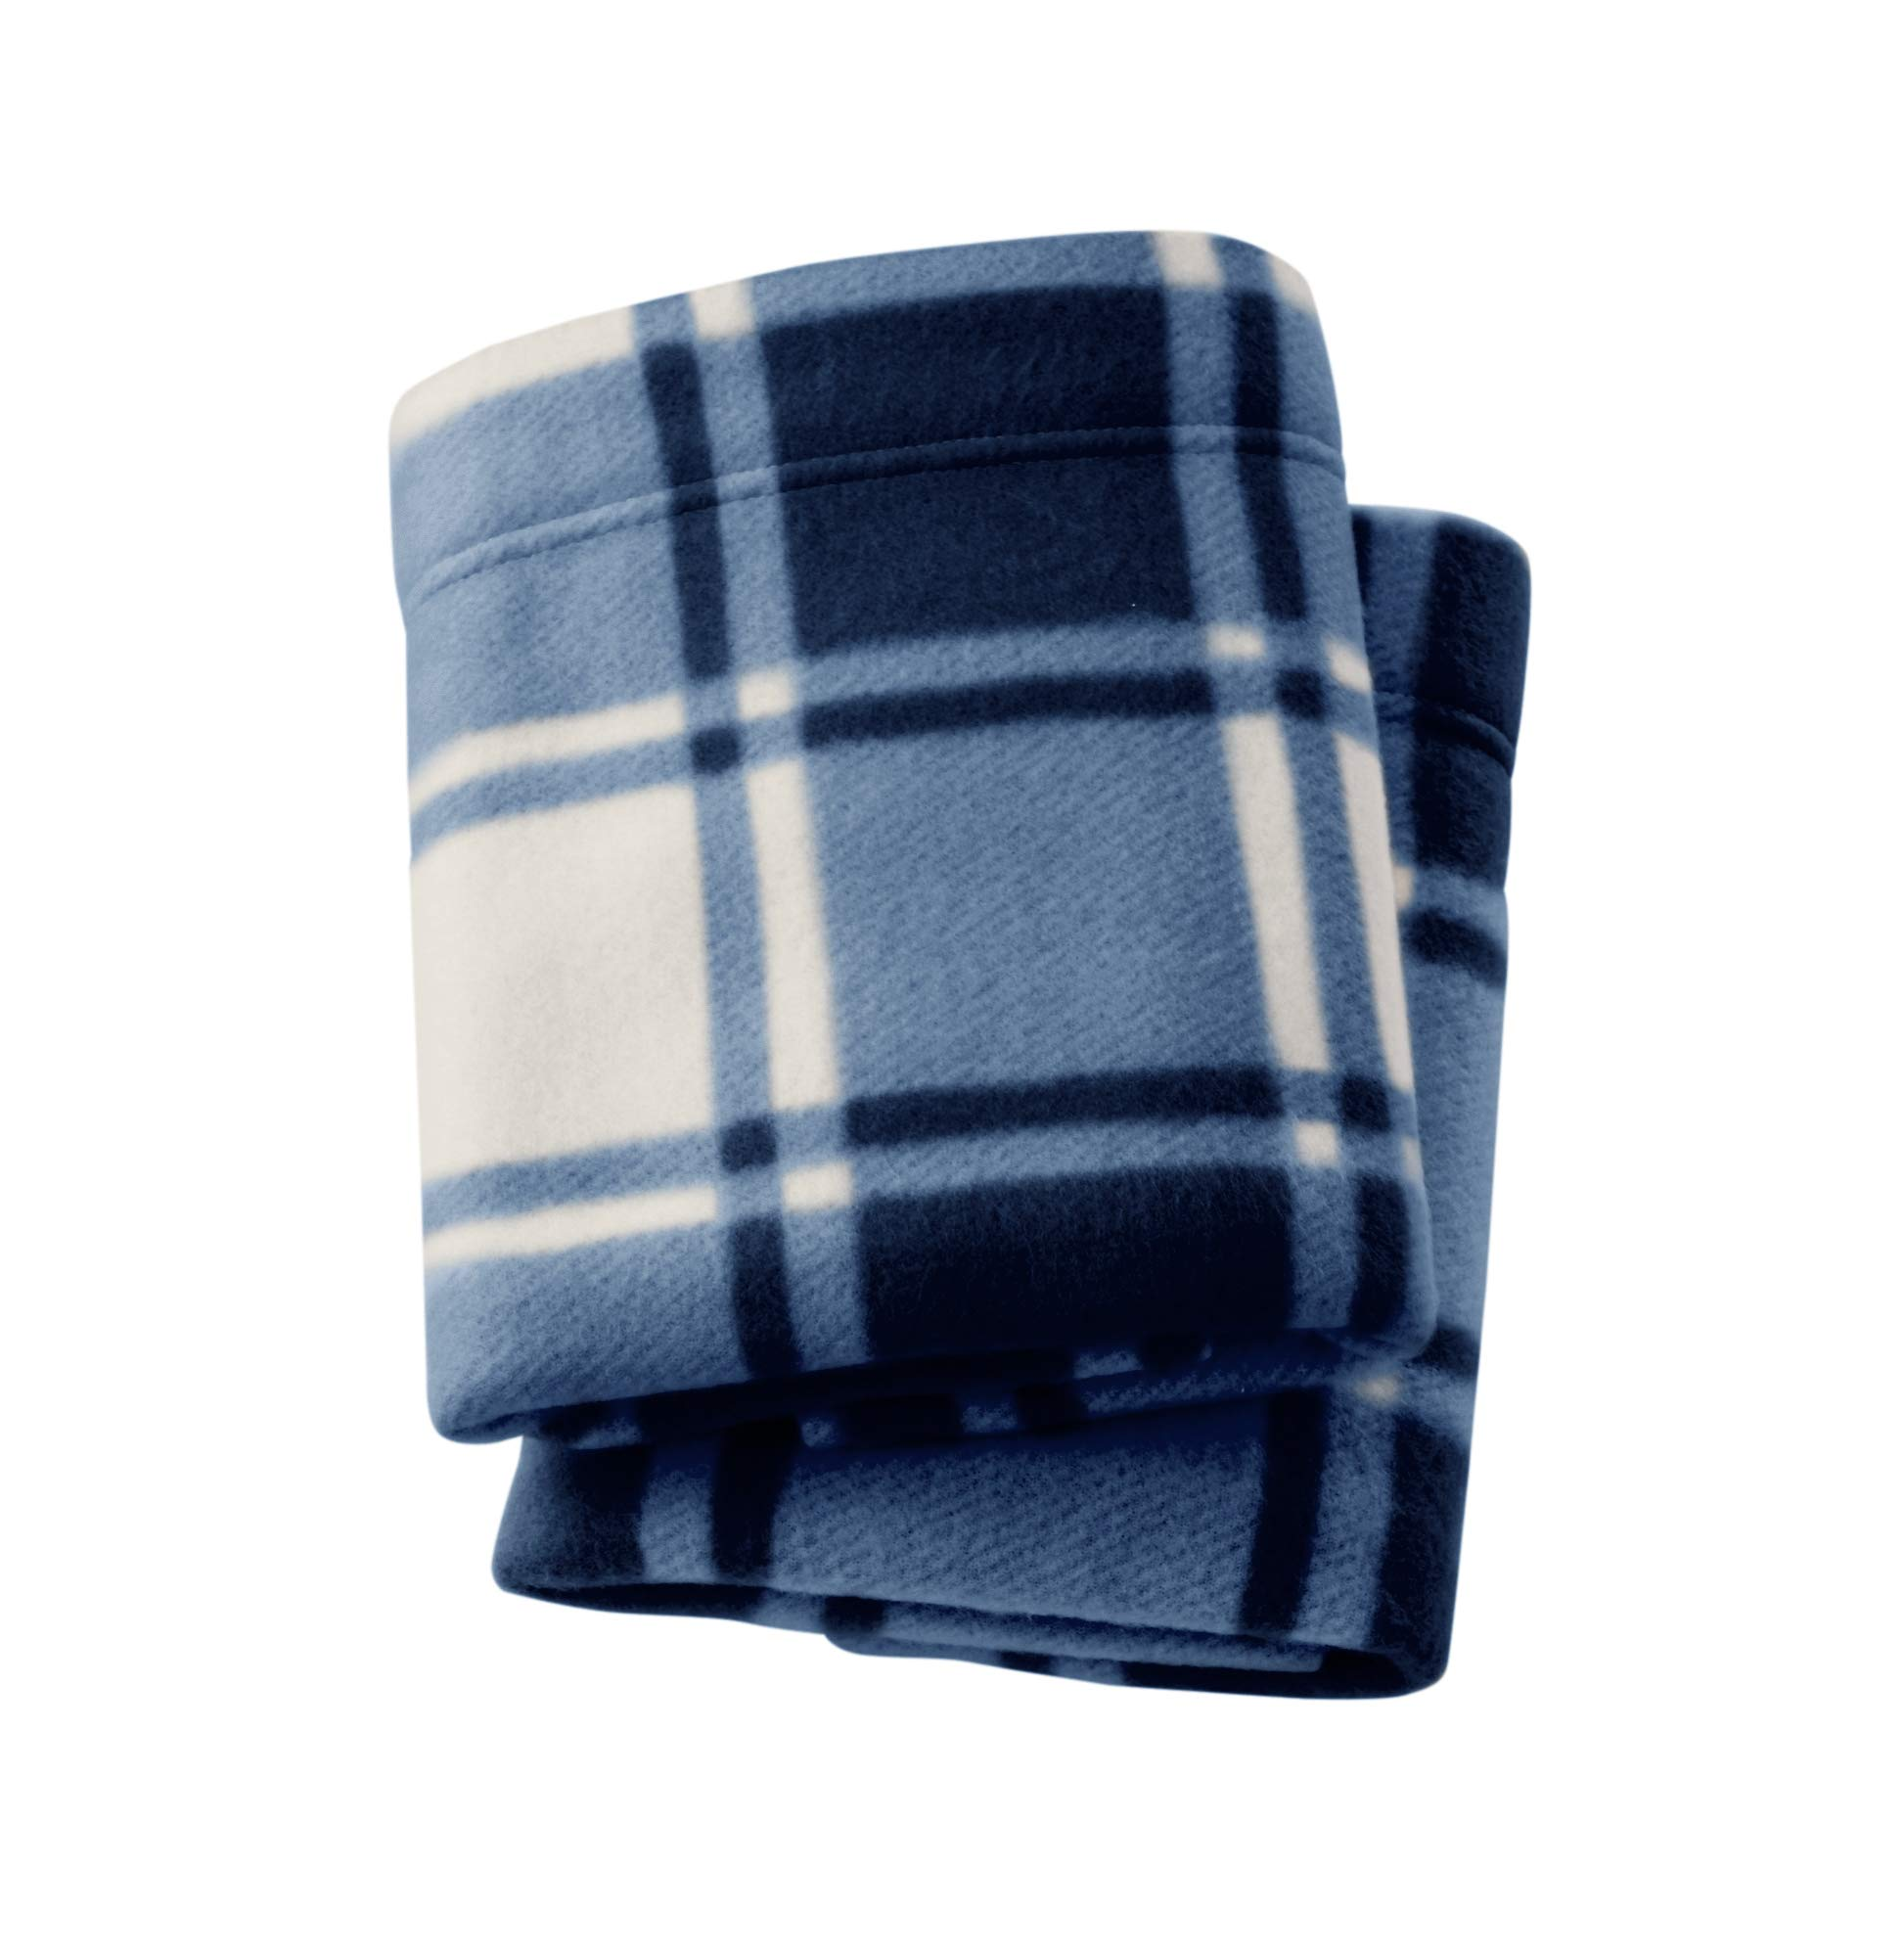 Great Bay Home Super Soft Extra Plush Plaid Polar Fleece Pillowcases. Cozy, Warm, Durable, Smooth, Breathable Winter Pillowcases with Plaid Pattern. Dara Collection Brand. (King, Navy)